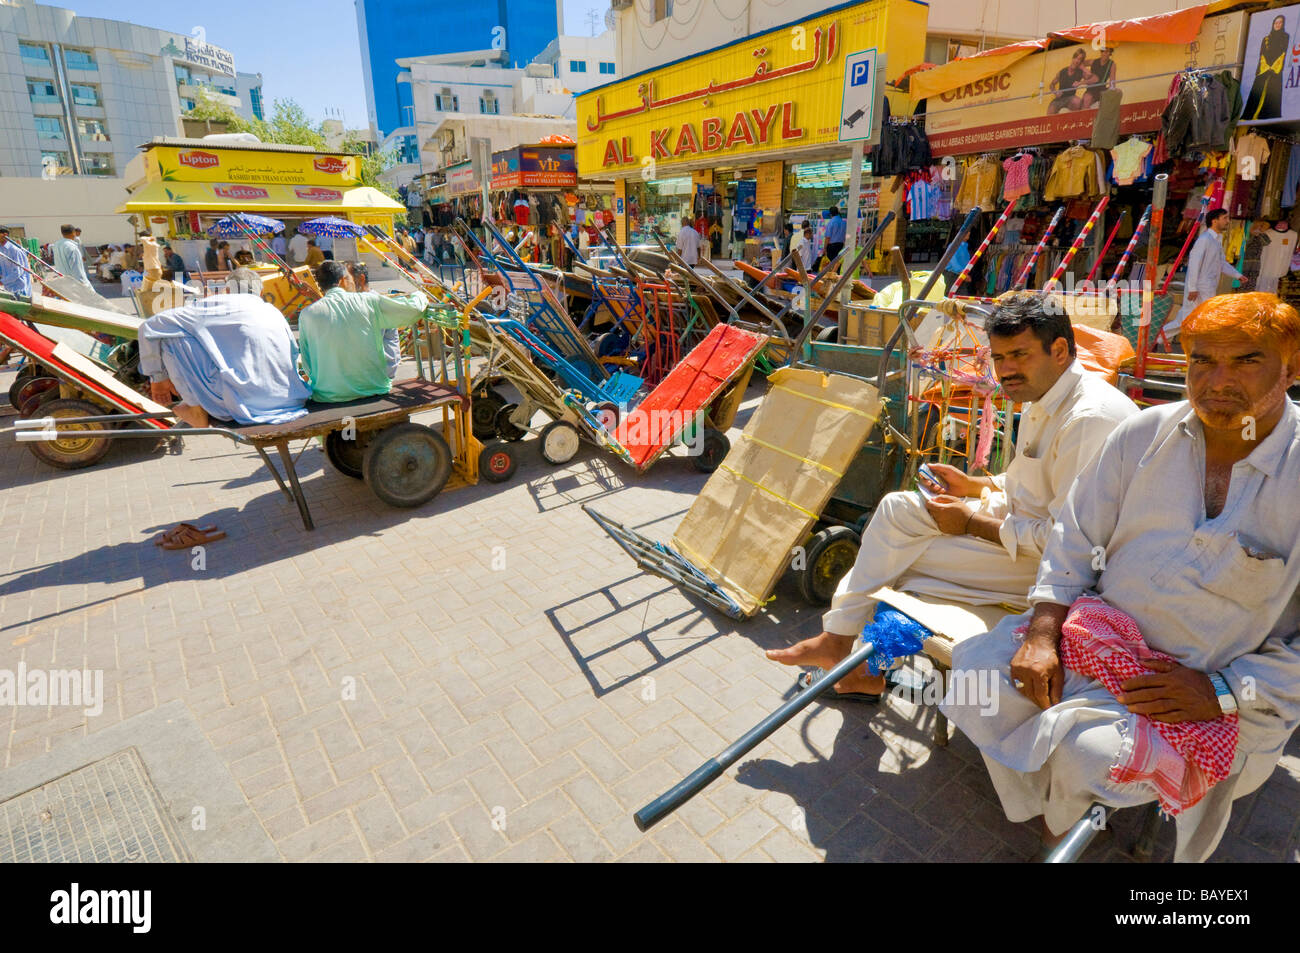 Foreign workers In Deira Dubai - Stock Image